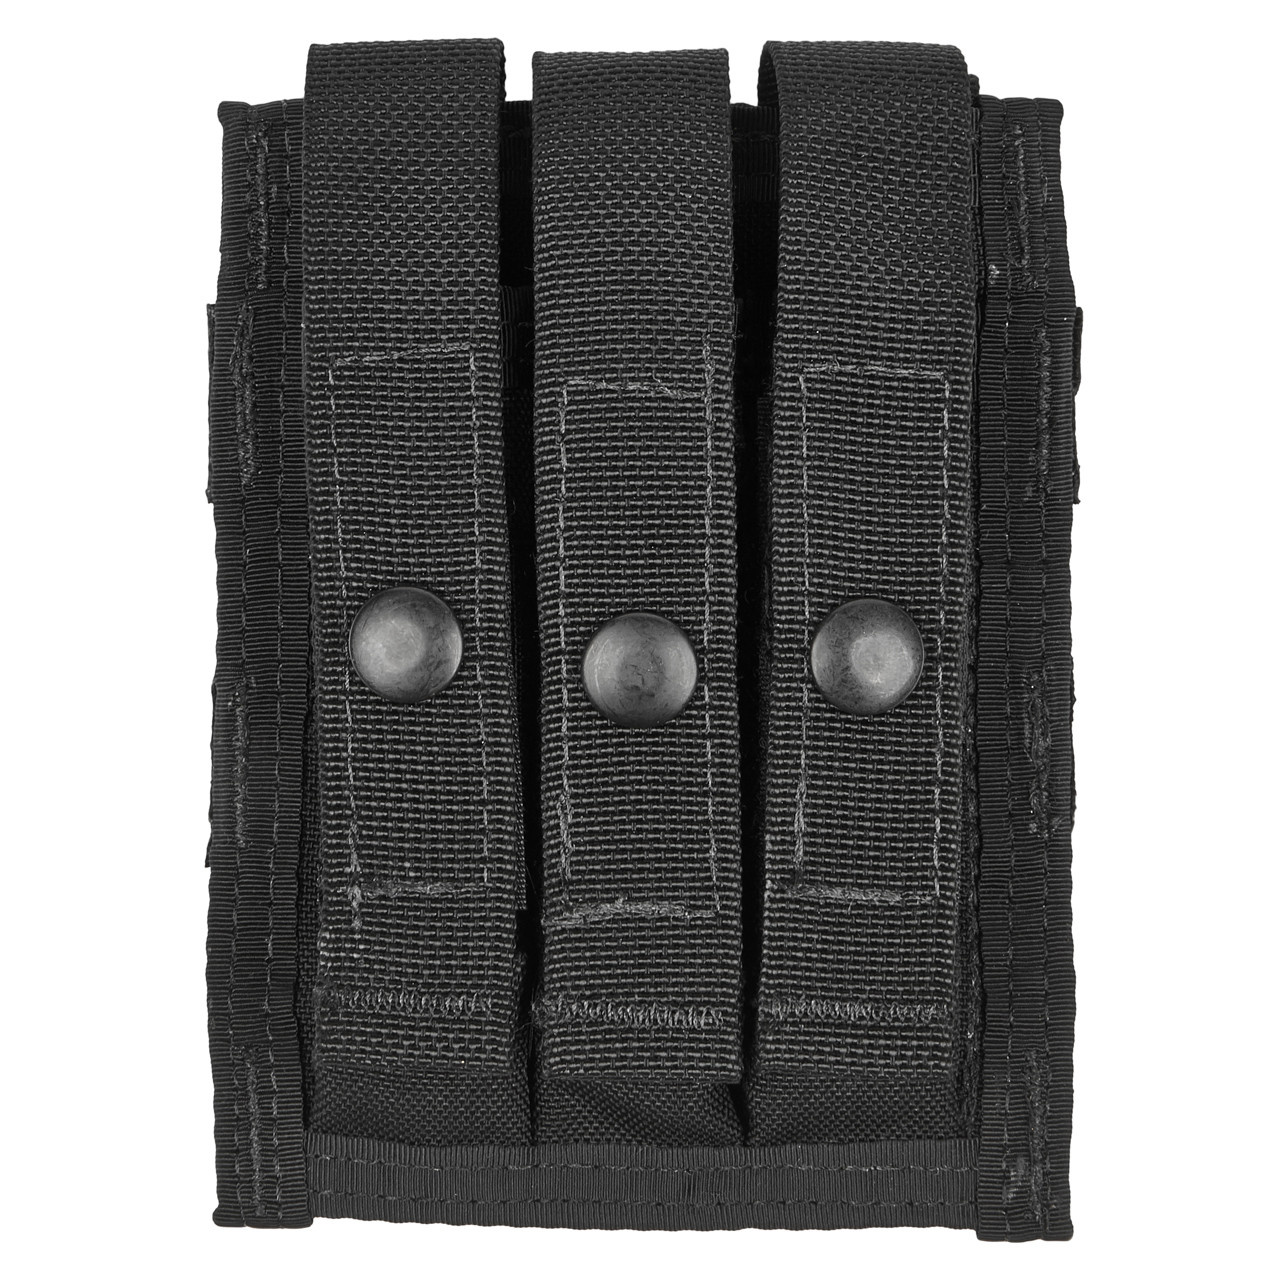 50487 M9 3 MAG POUCH